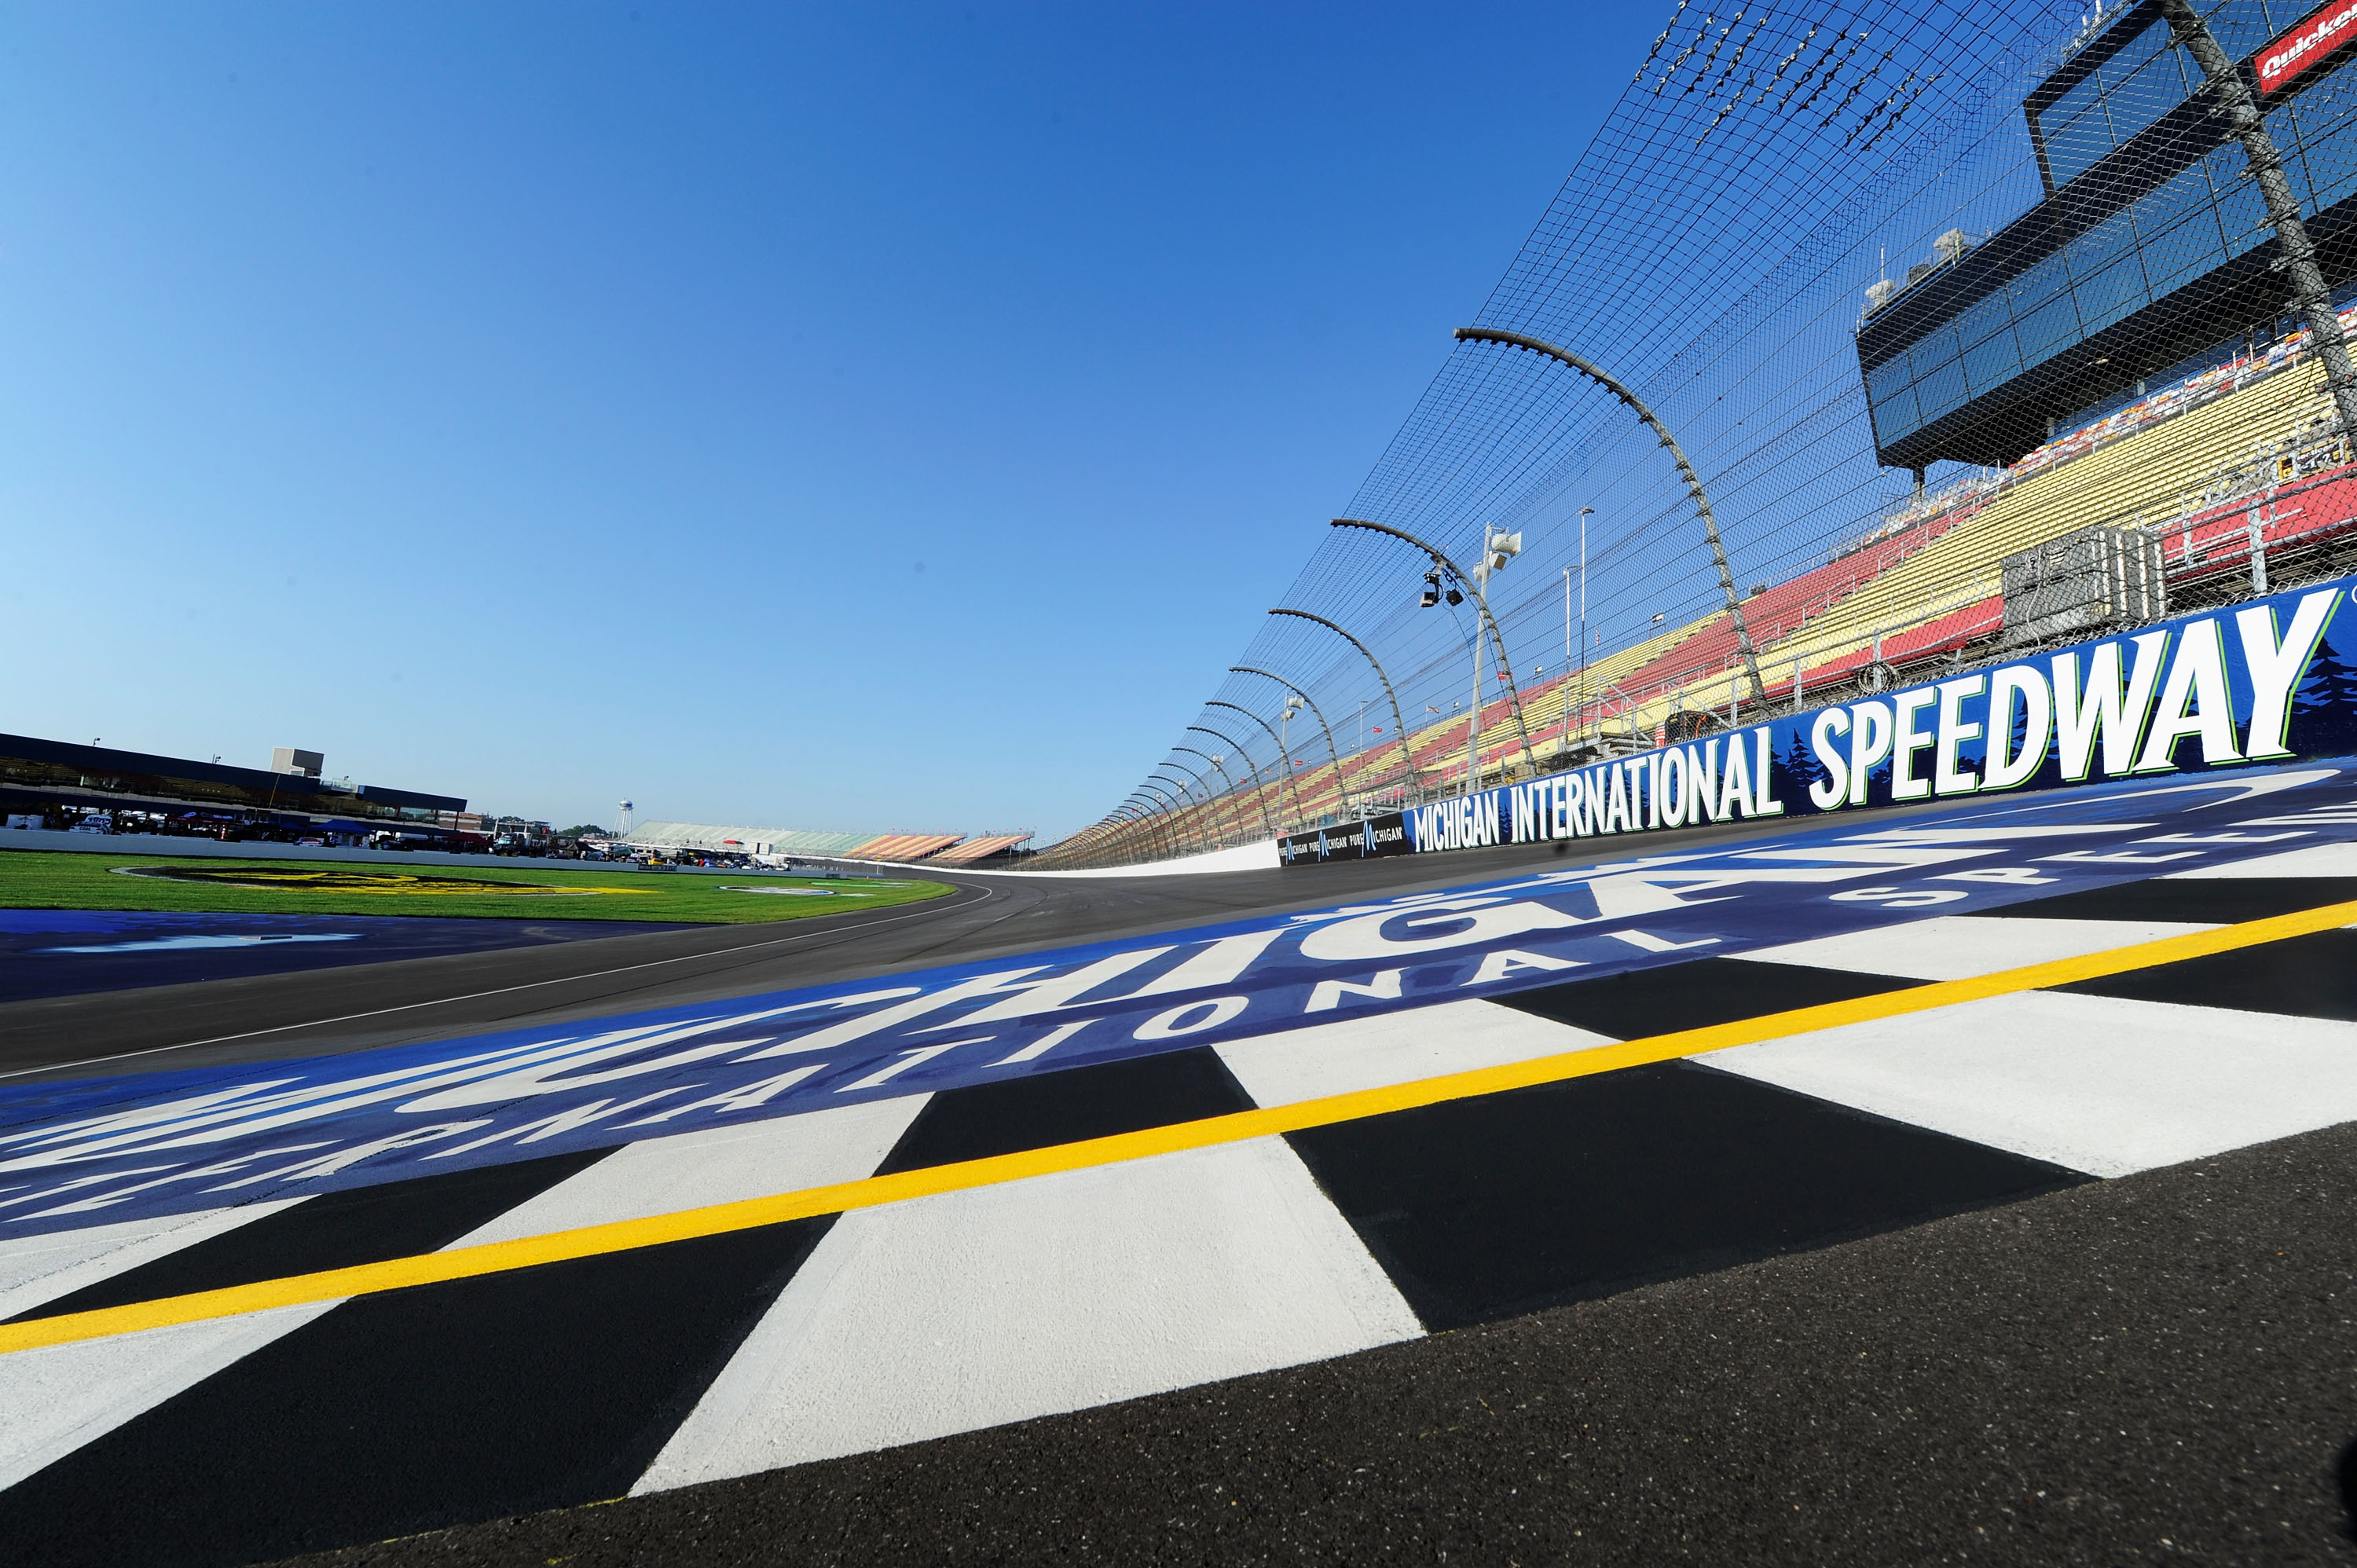 Nascar Racing Games >> Nascar Track Wallpapers High Quality | Download Free